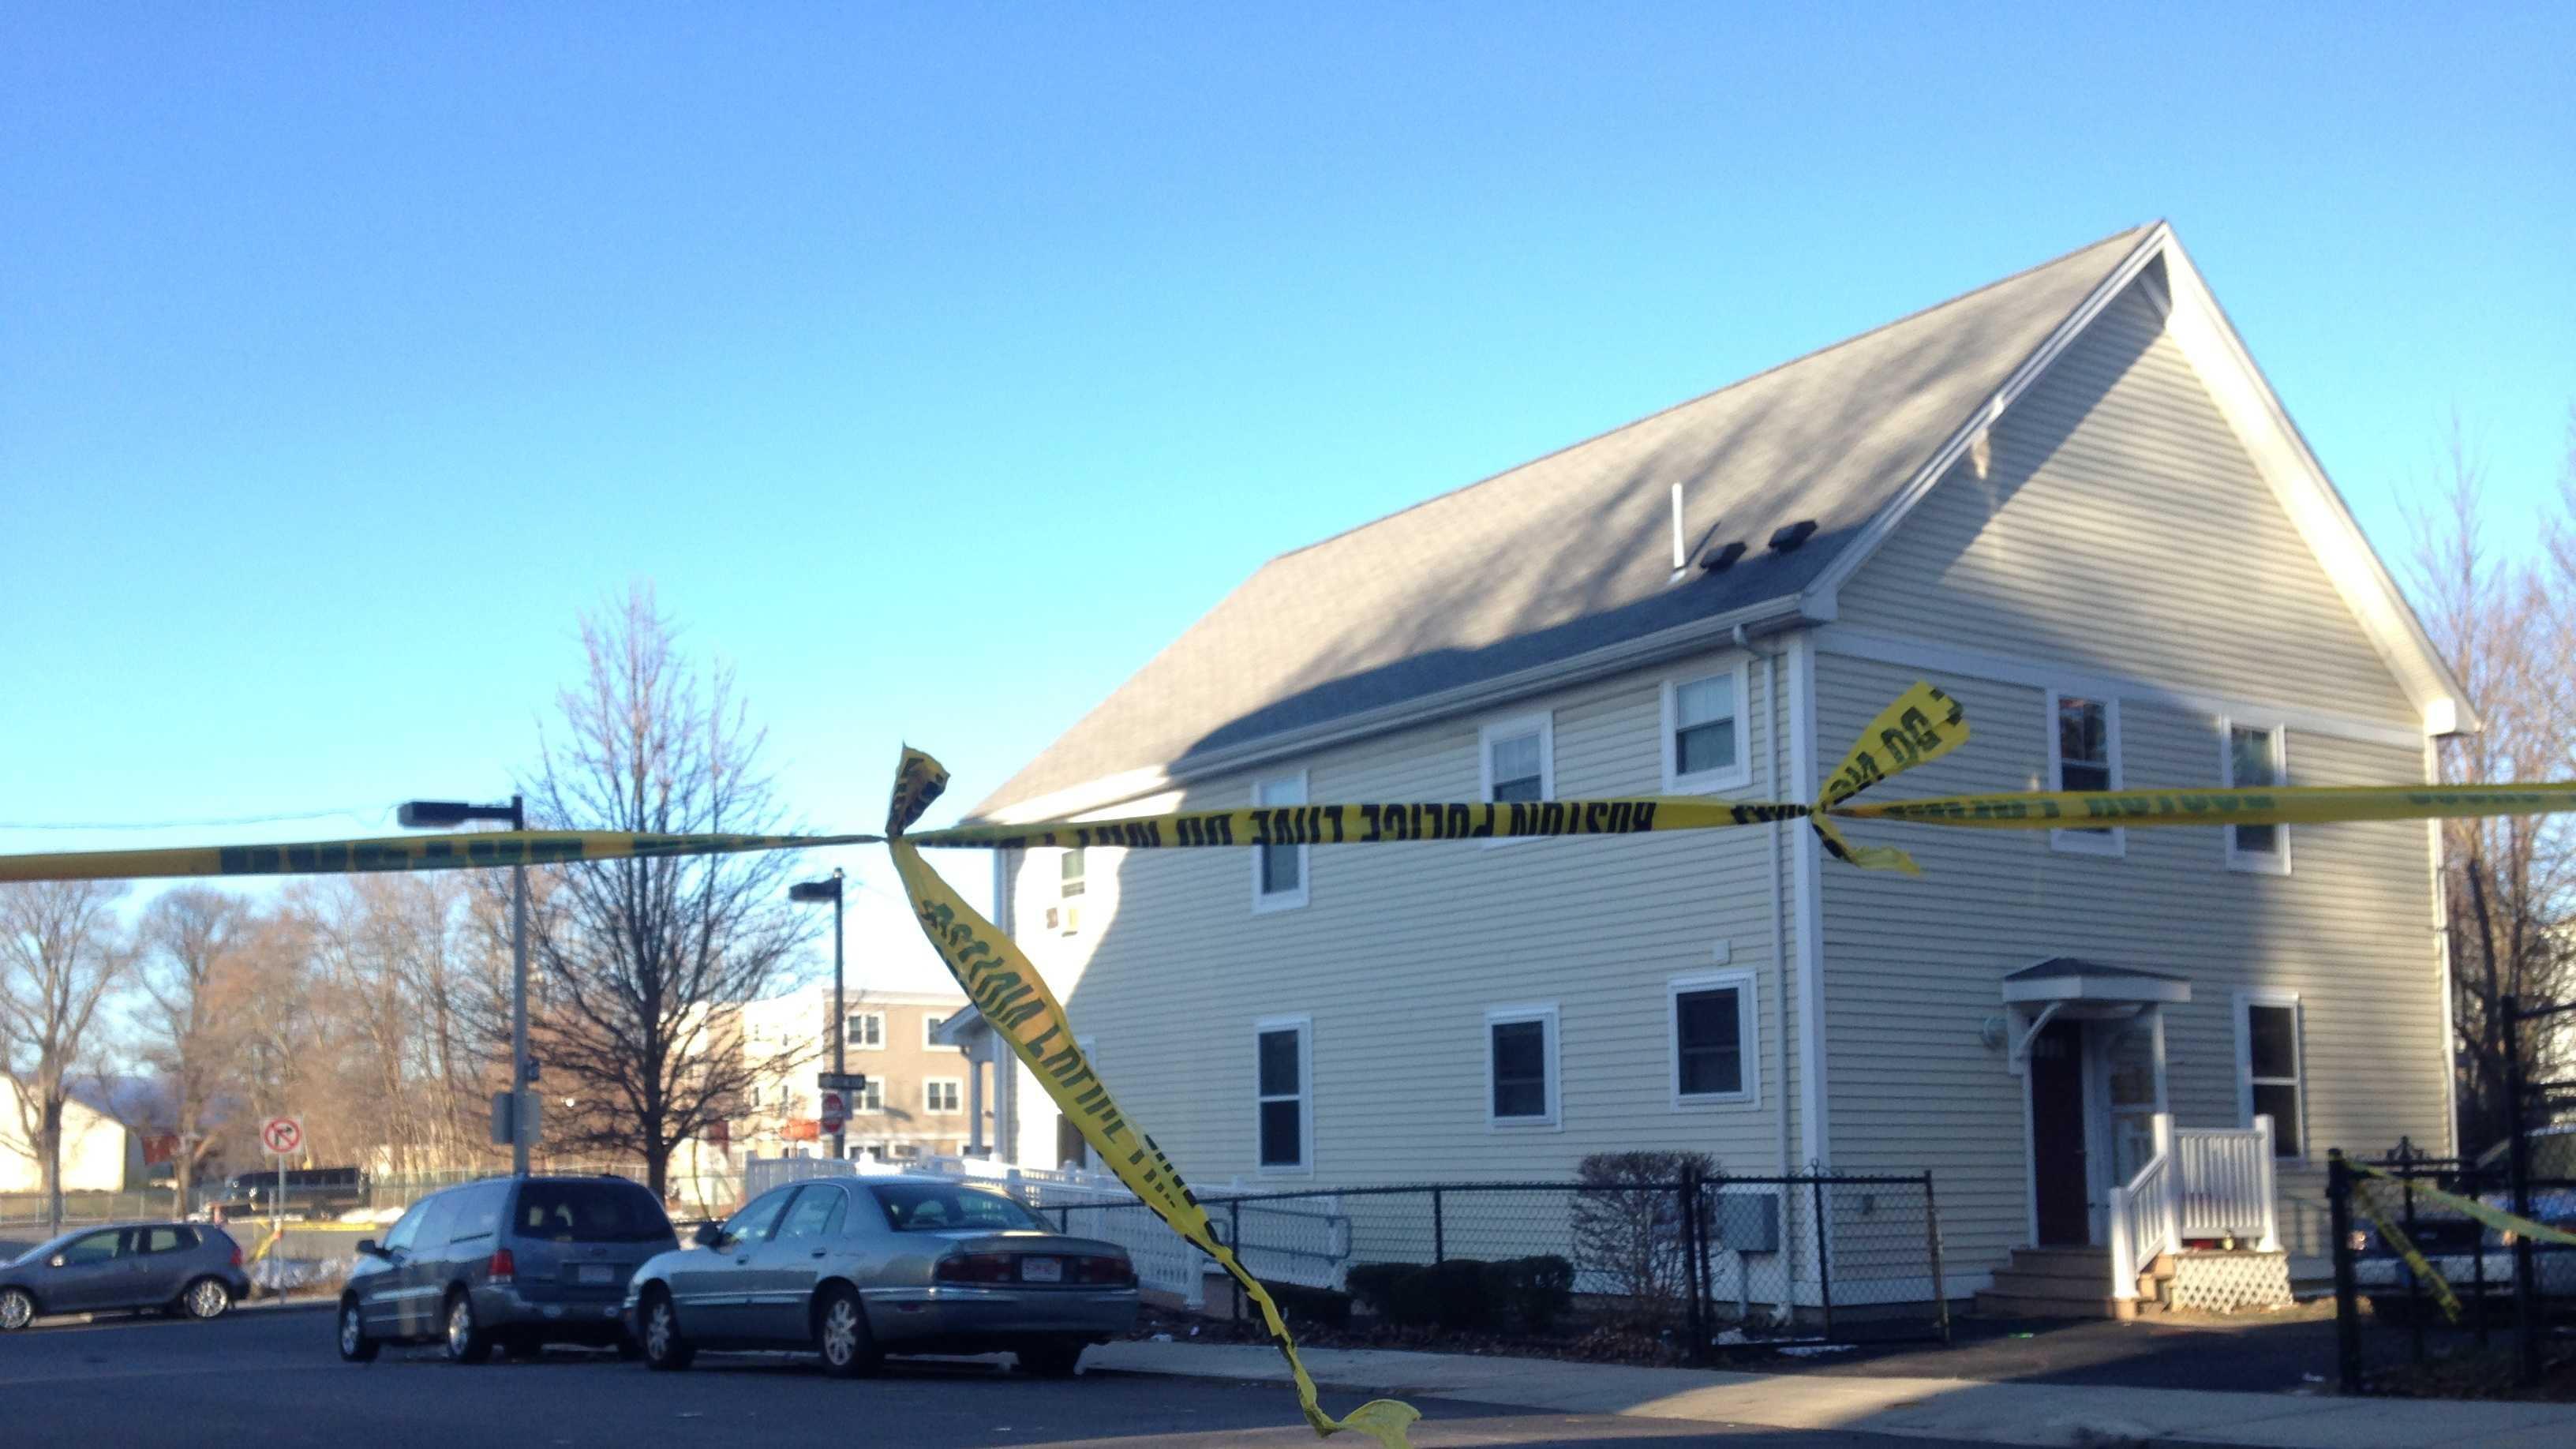 Wales Street Dorchester Shooting 122513